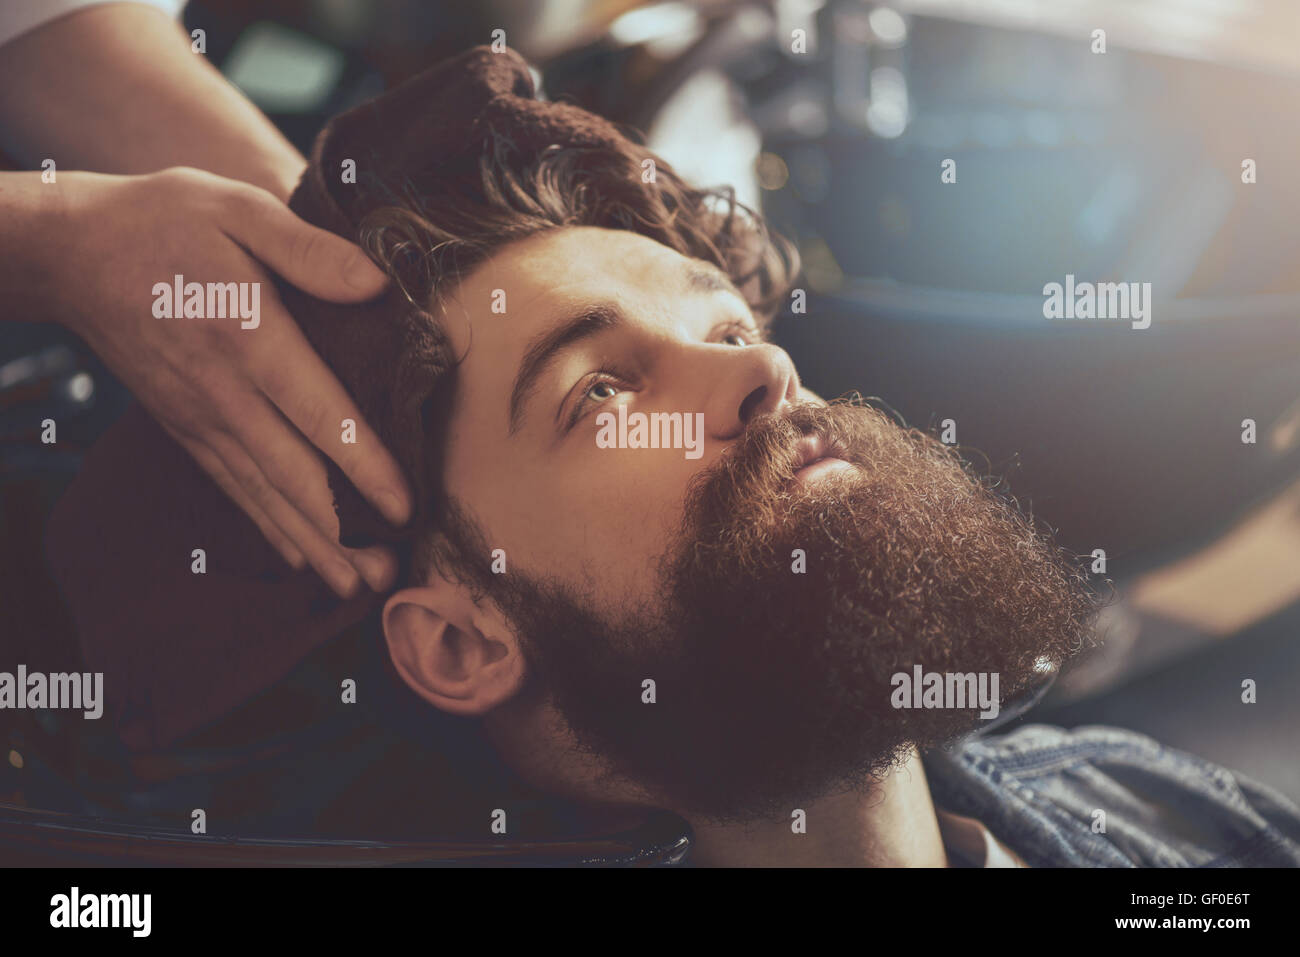 Modern hairstyle industry - Stock Image